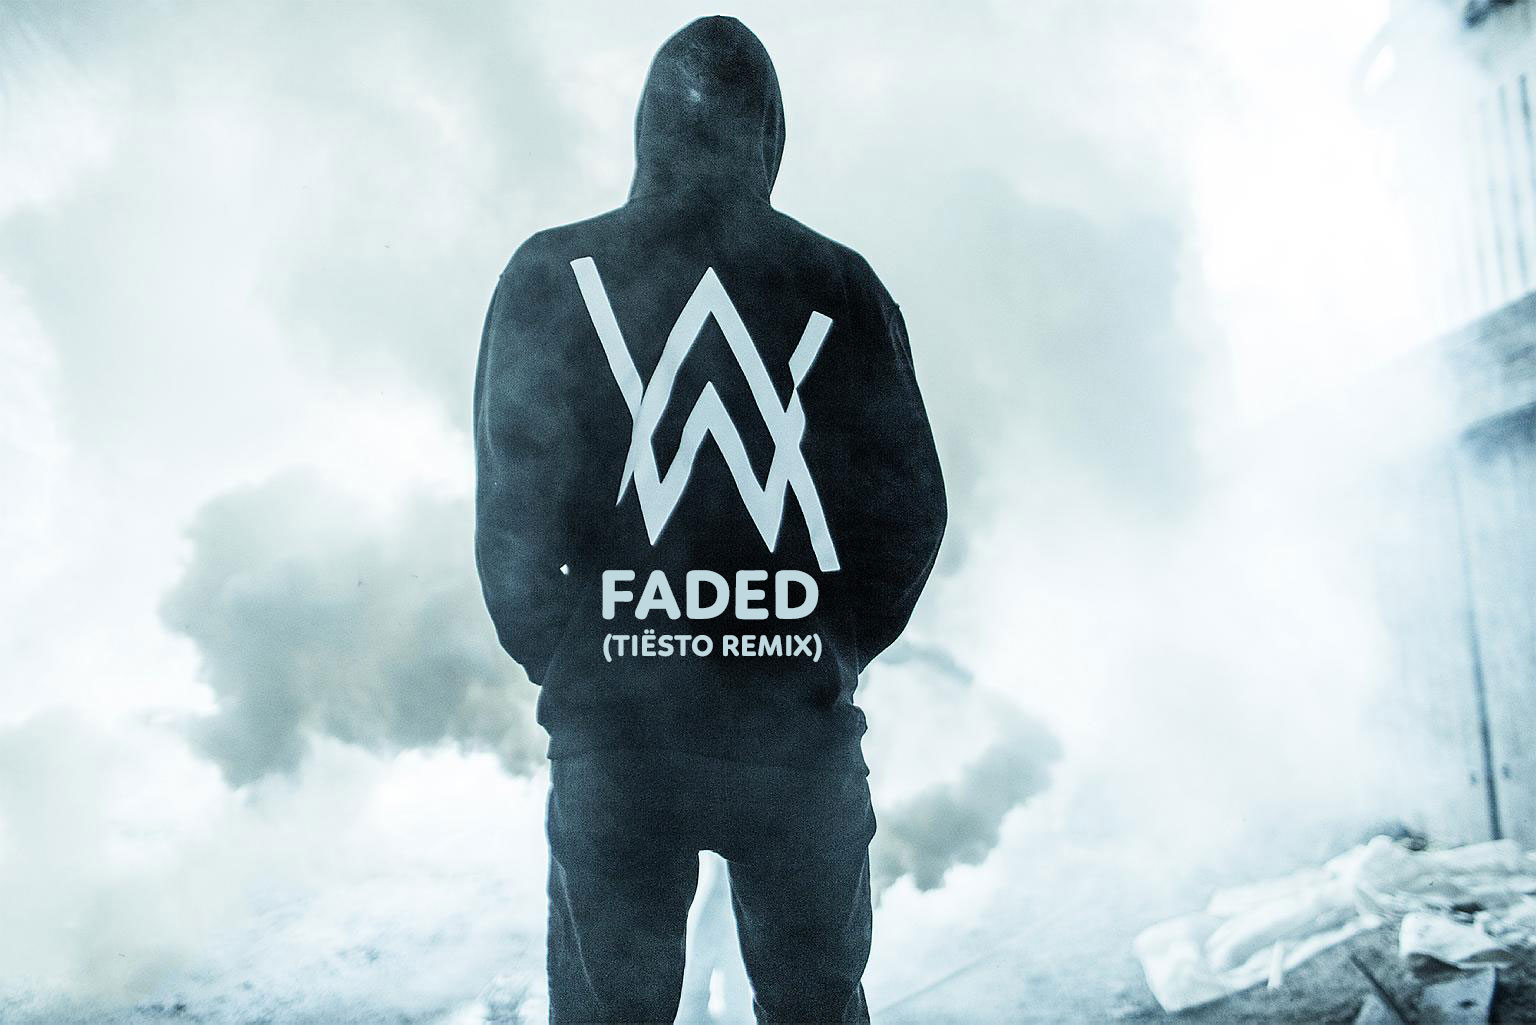 Faded Remix Tiesto Alan Walker